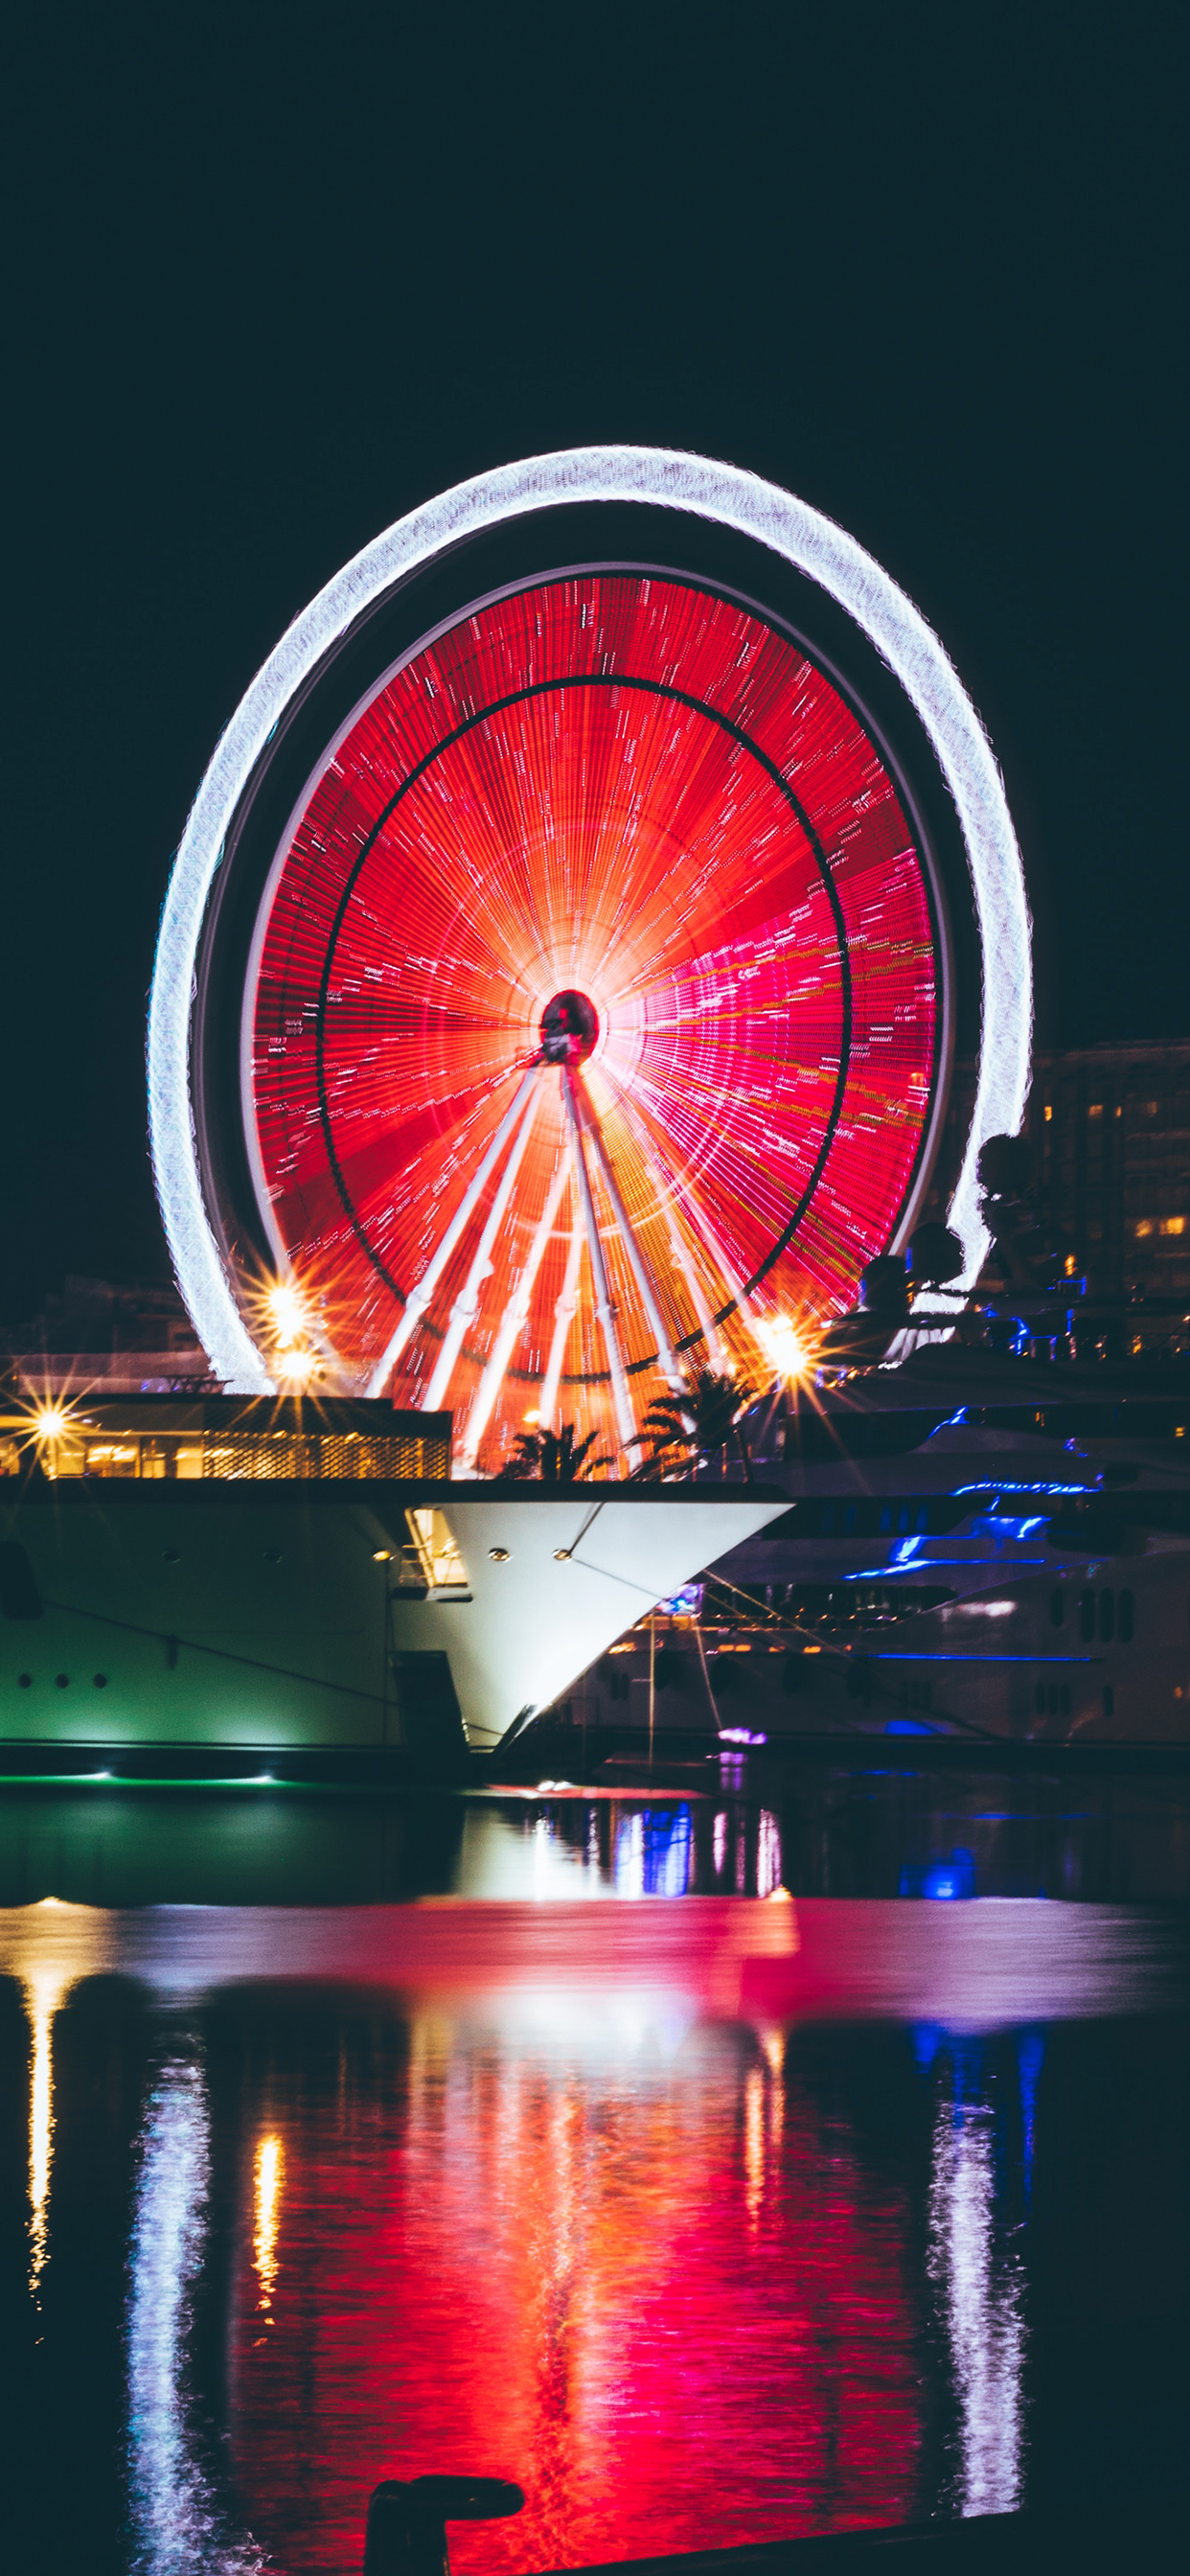 iPhone wallpaper ferris wheel red Ferris wheel